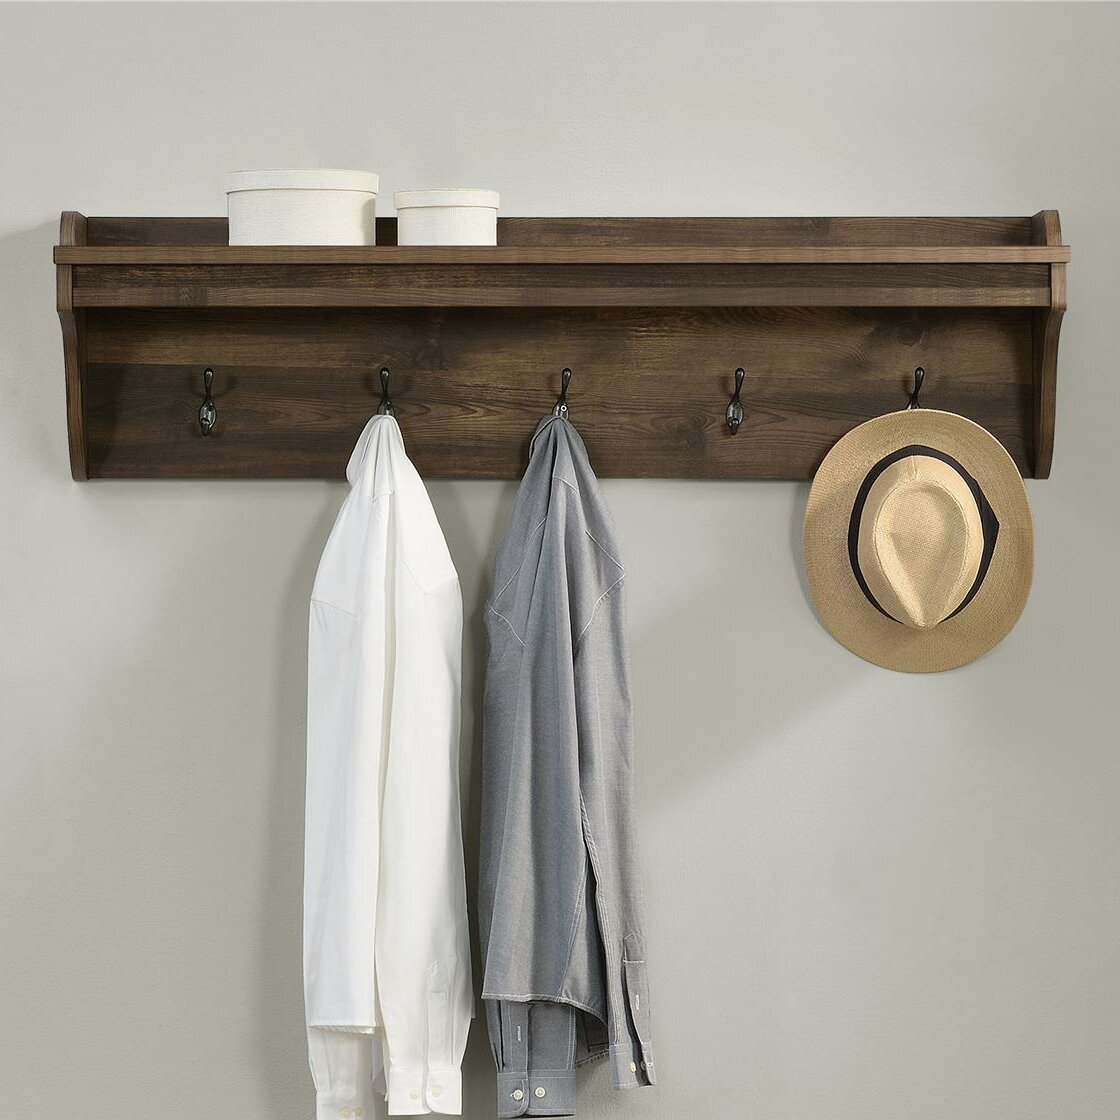 72e7d978180d0 Greyleigh Buckhead Wall Mounted Coat Rack   Reviews